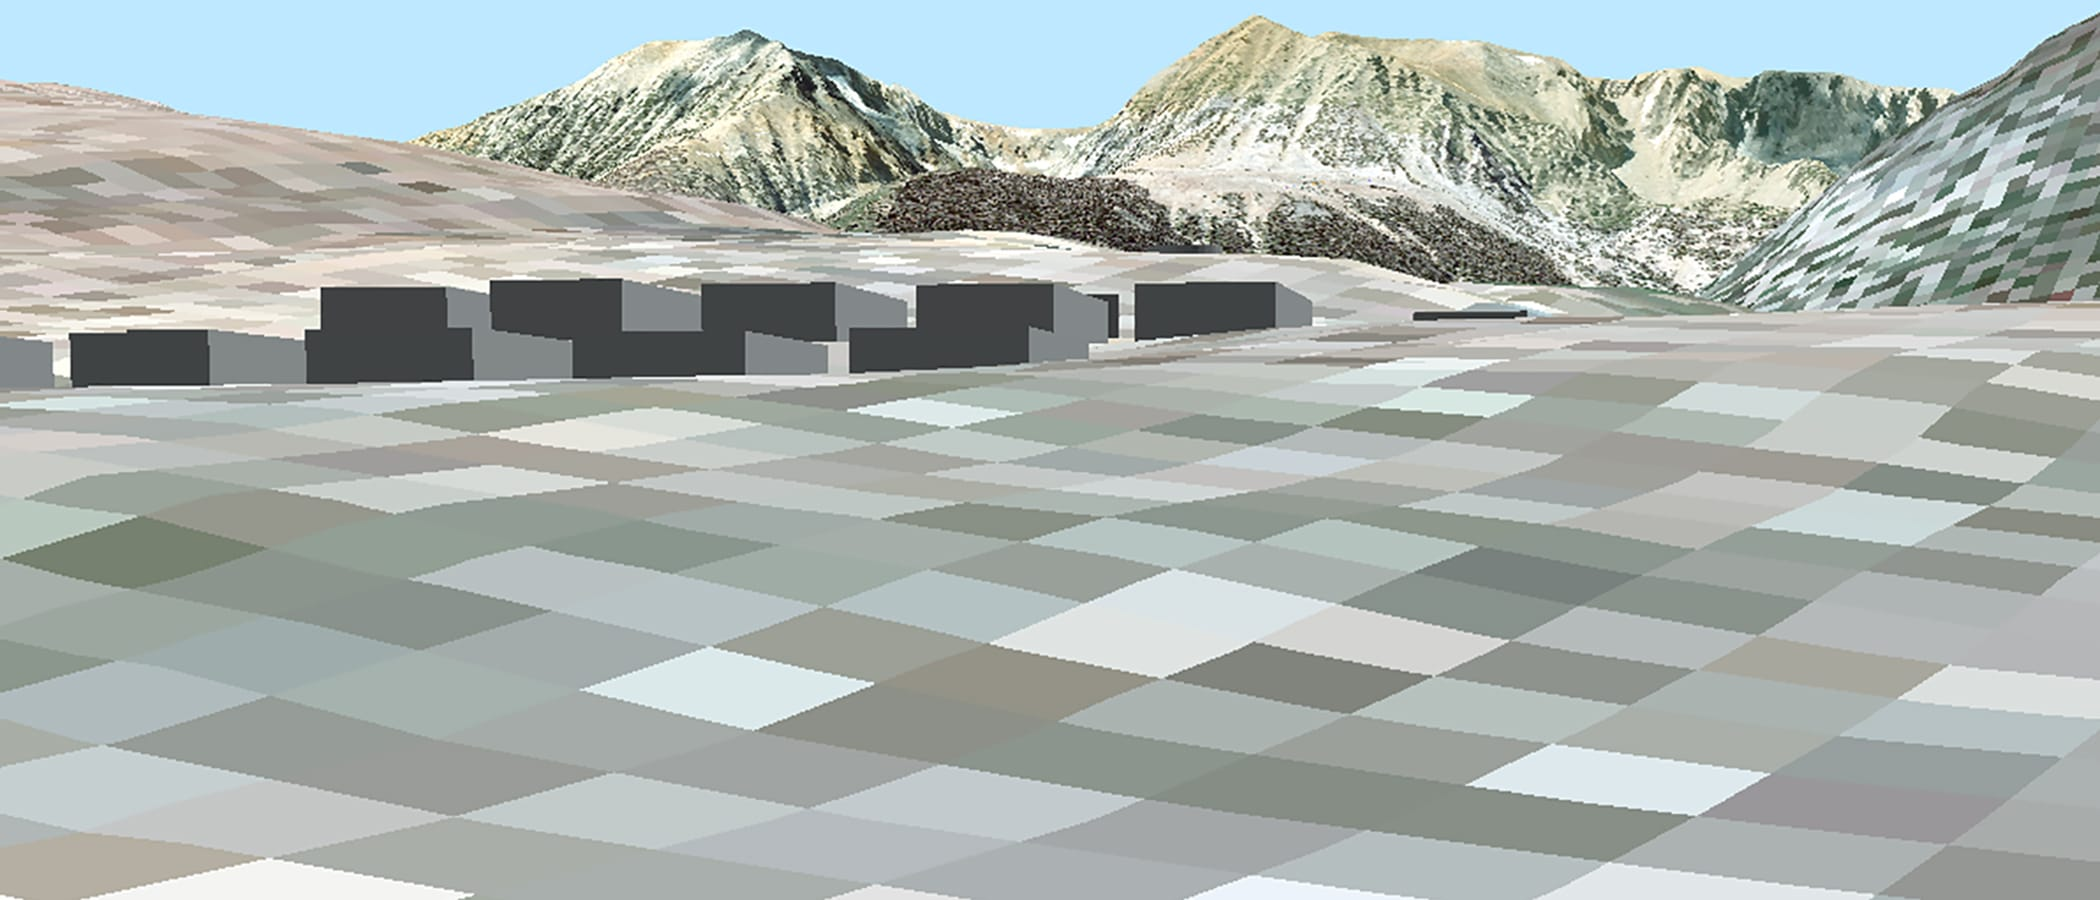 Computer generated simulation from the Tioga Inn project plans of the buildings as blocks on the digital-looking raised-relief landscape with the mountains of Tioga Pass in the distance.